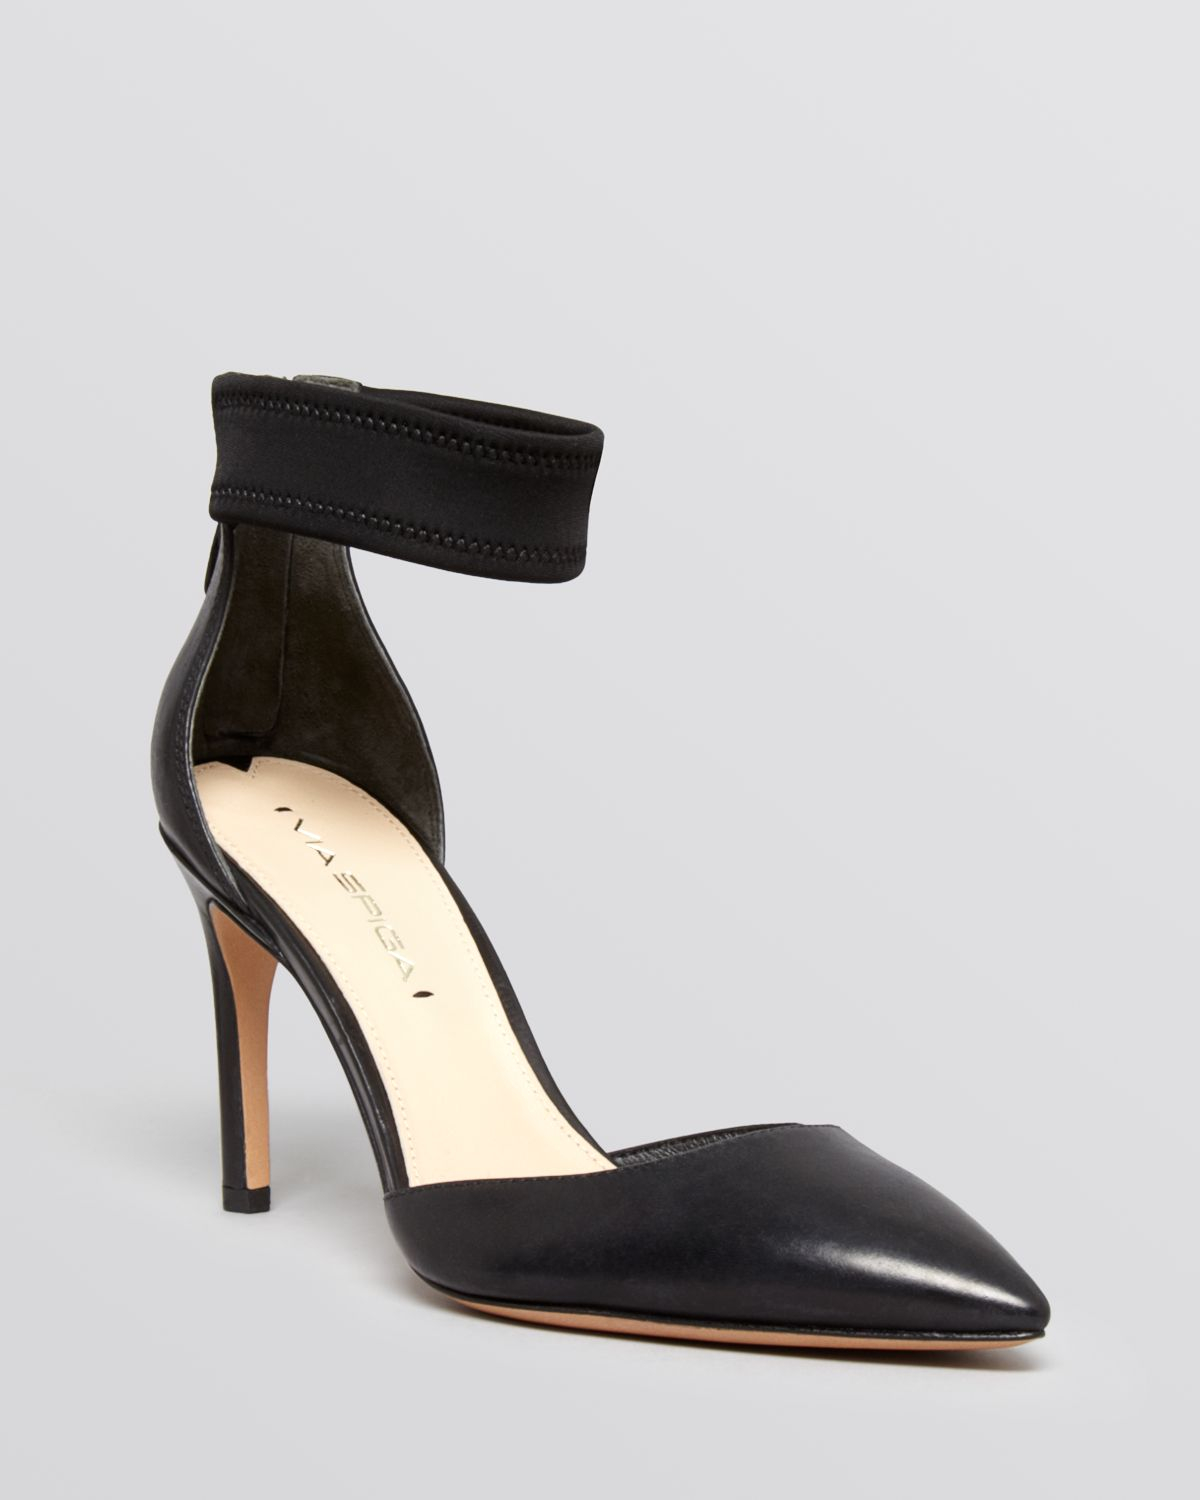 Lyst - Via spiga Pointed Toe Ankle Strap Pumps - Ife High Heel in ...